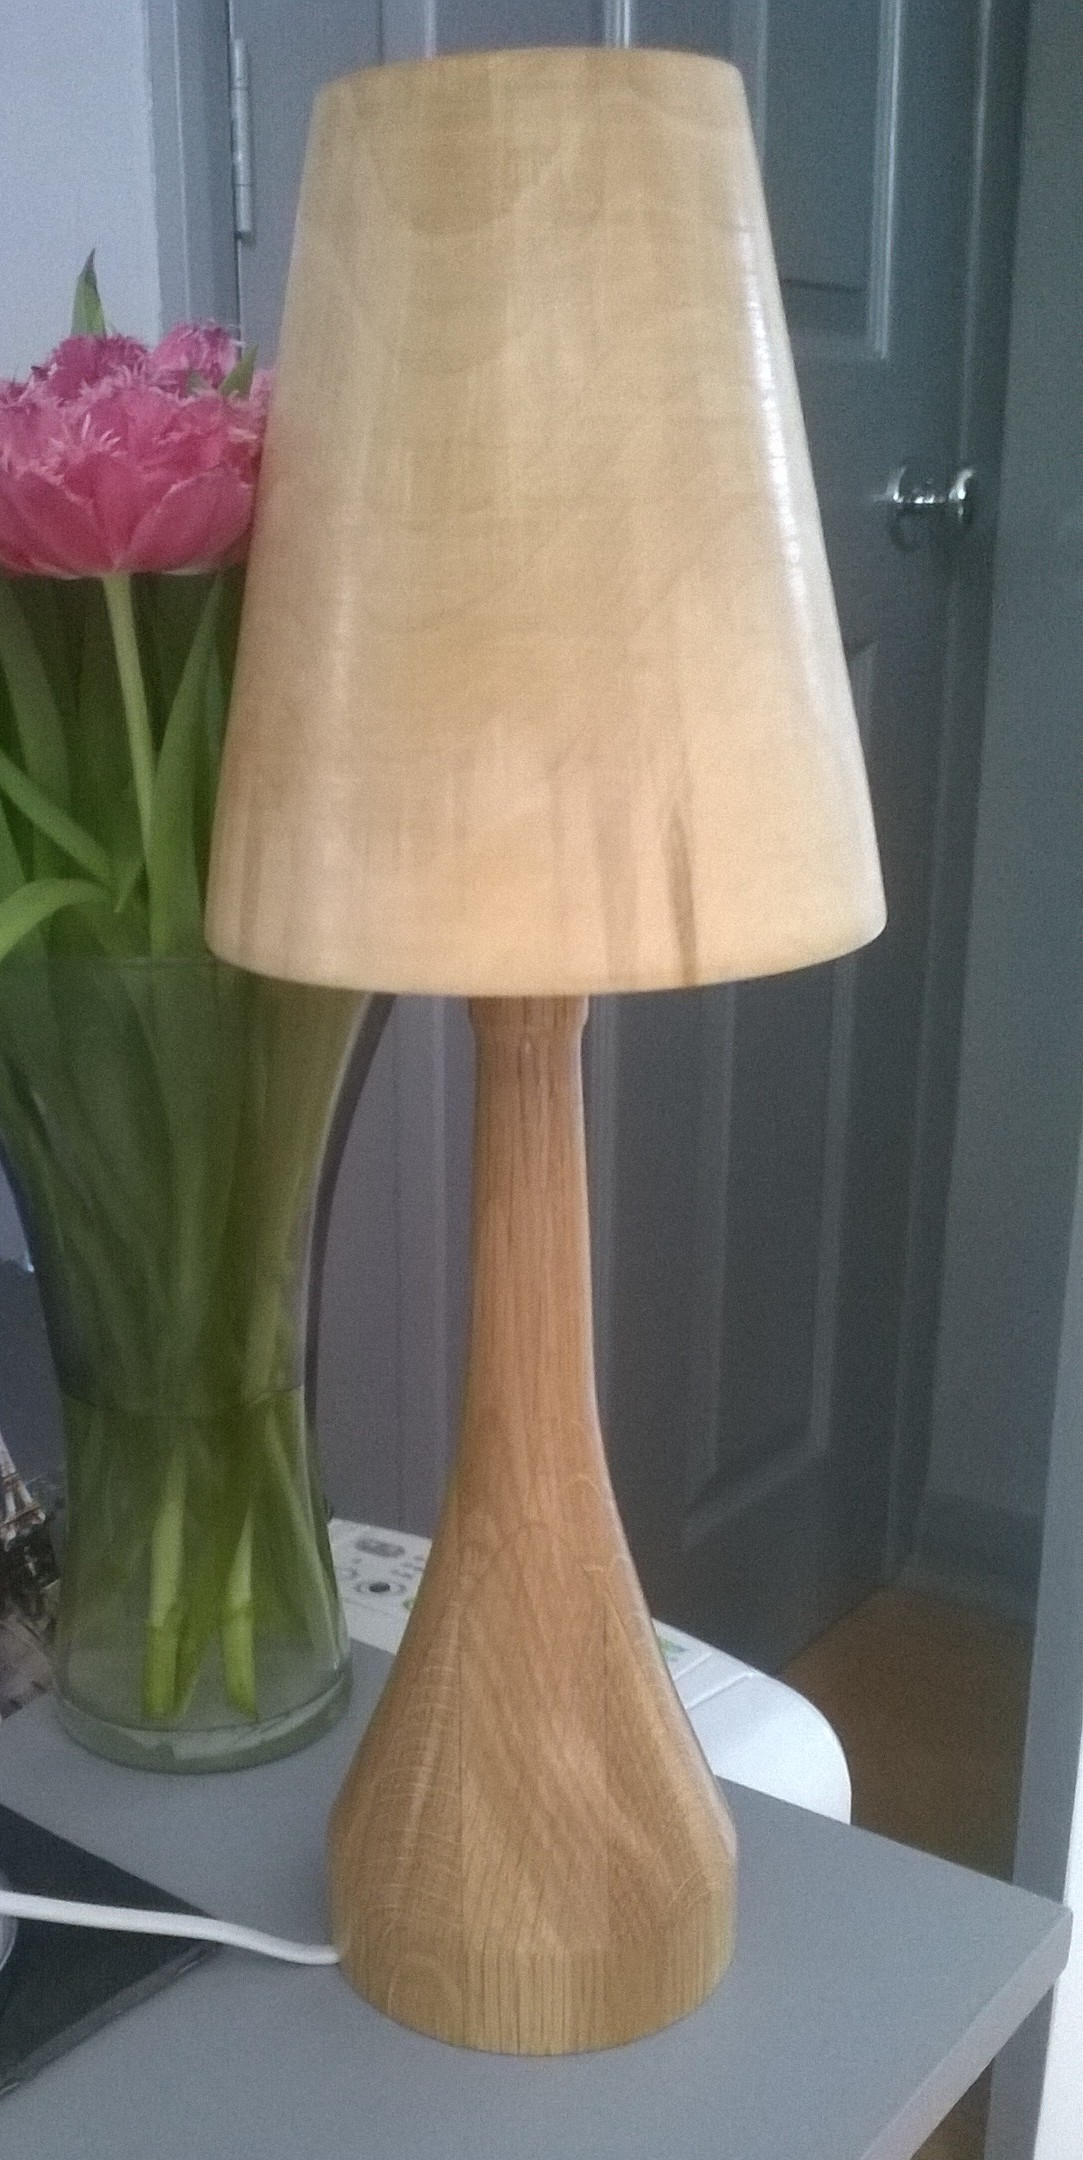 Picture of Lamp Base Designs 1 and 2